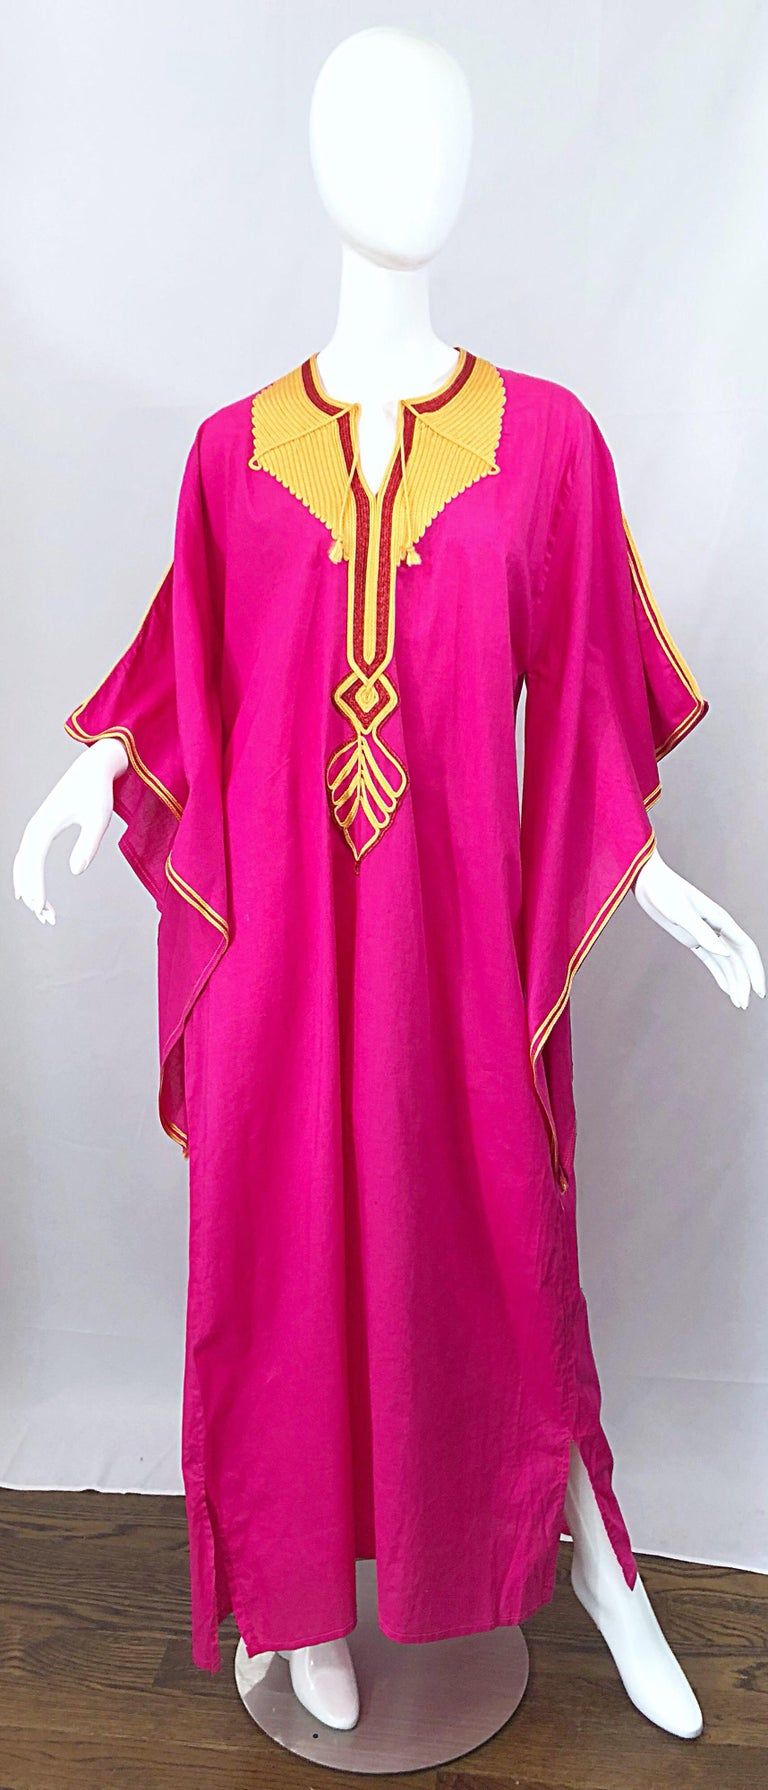 Amazing 1970s Hot Pink + Yellow Angel Sleeve Vintage 70s Kaftan Maxi Dress For Sale 8